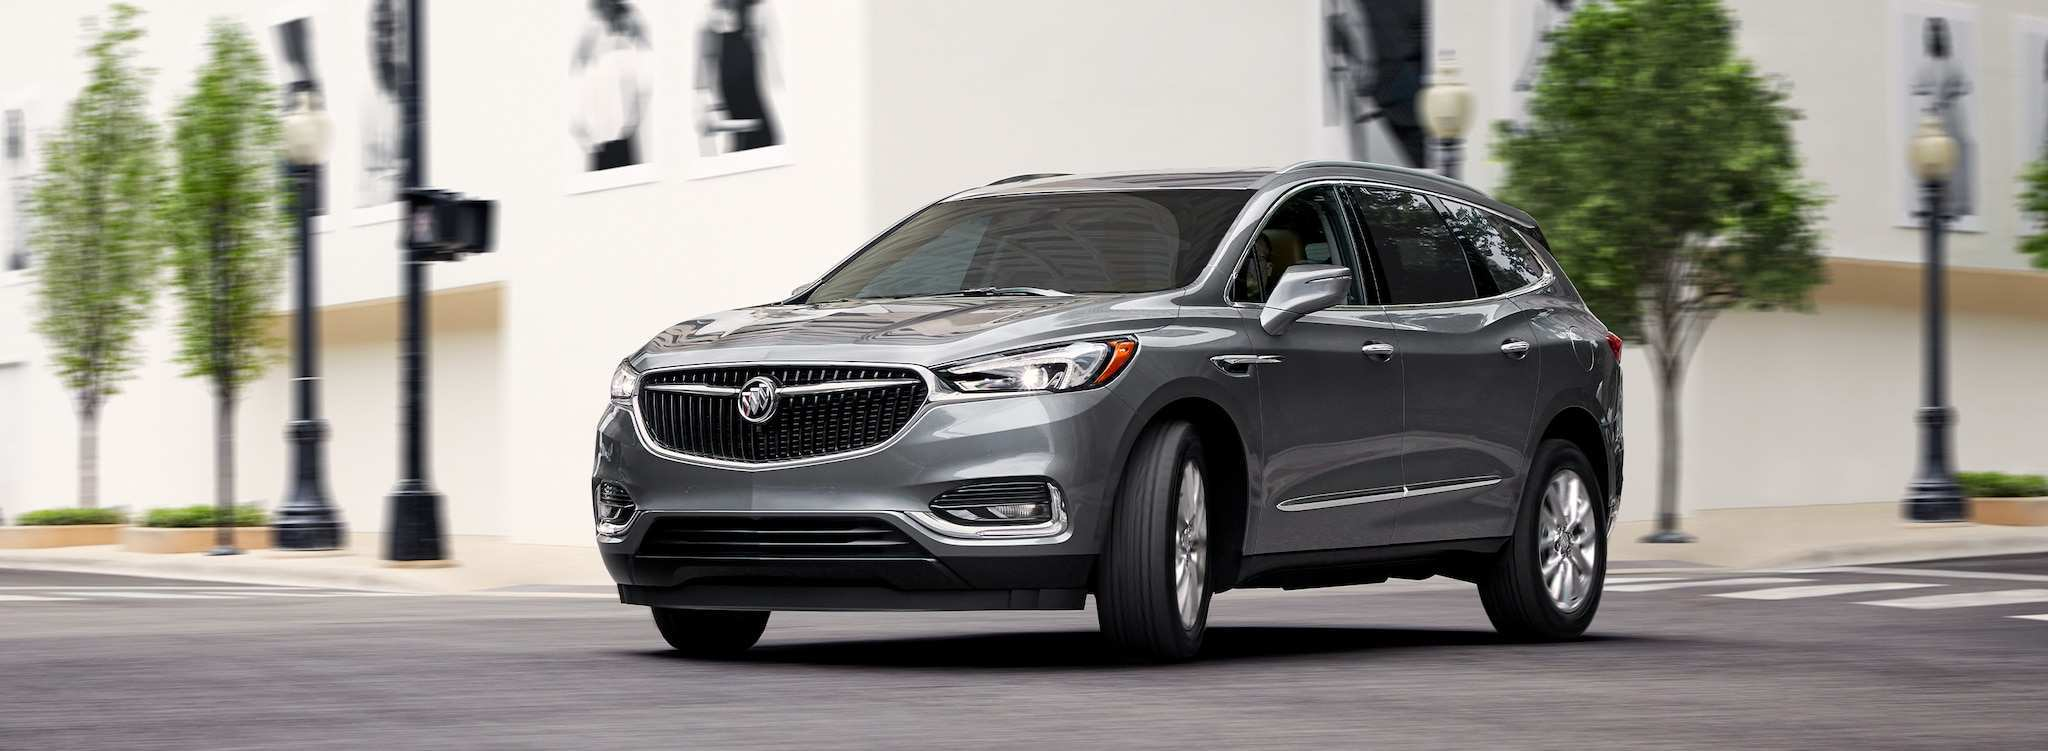 54 Best 2020 Buick Suv Pricing